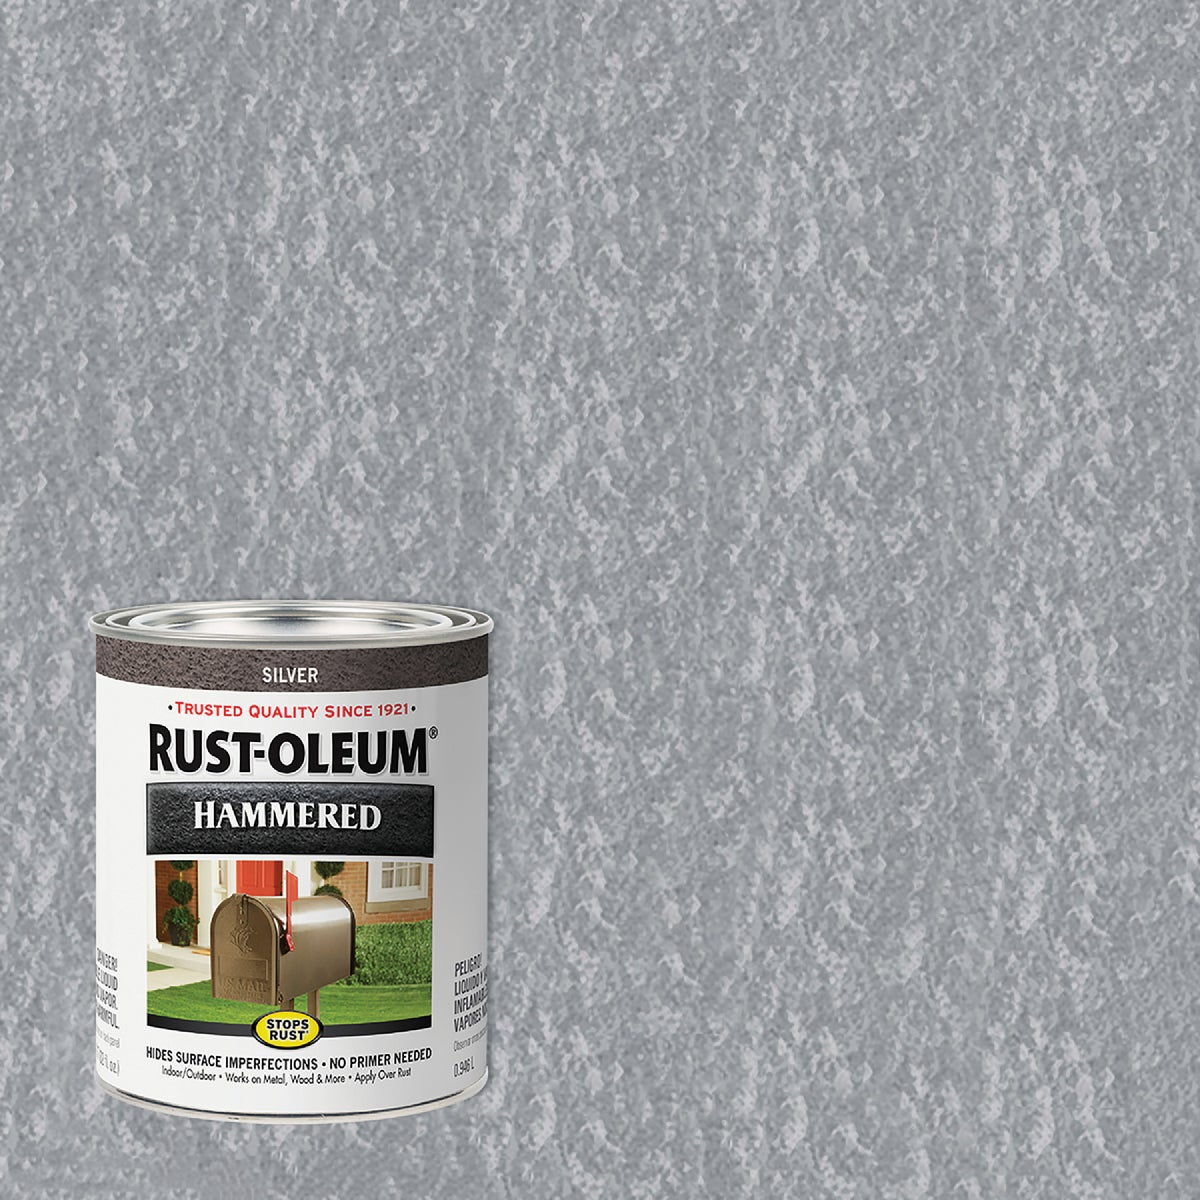 SILVER HAMMERED PAINT - 7213-502 by Rustoleum